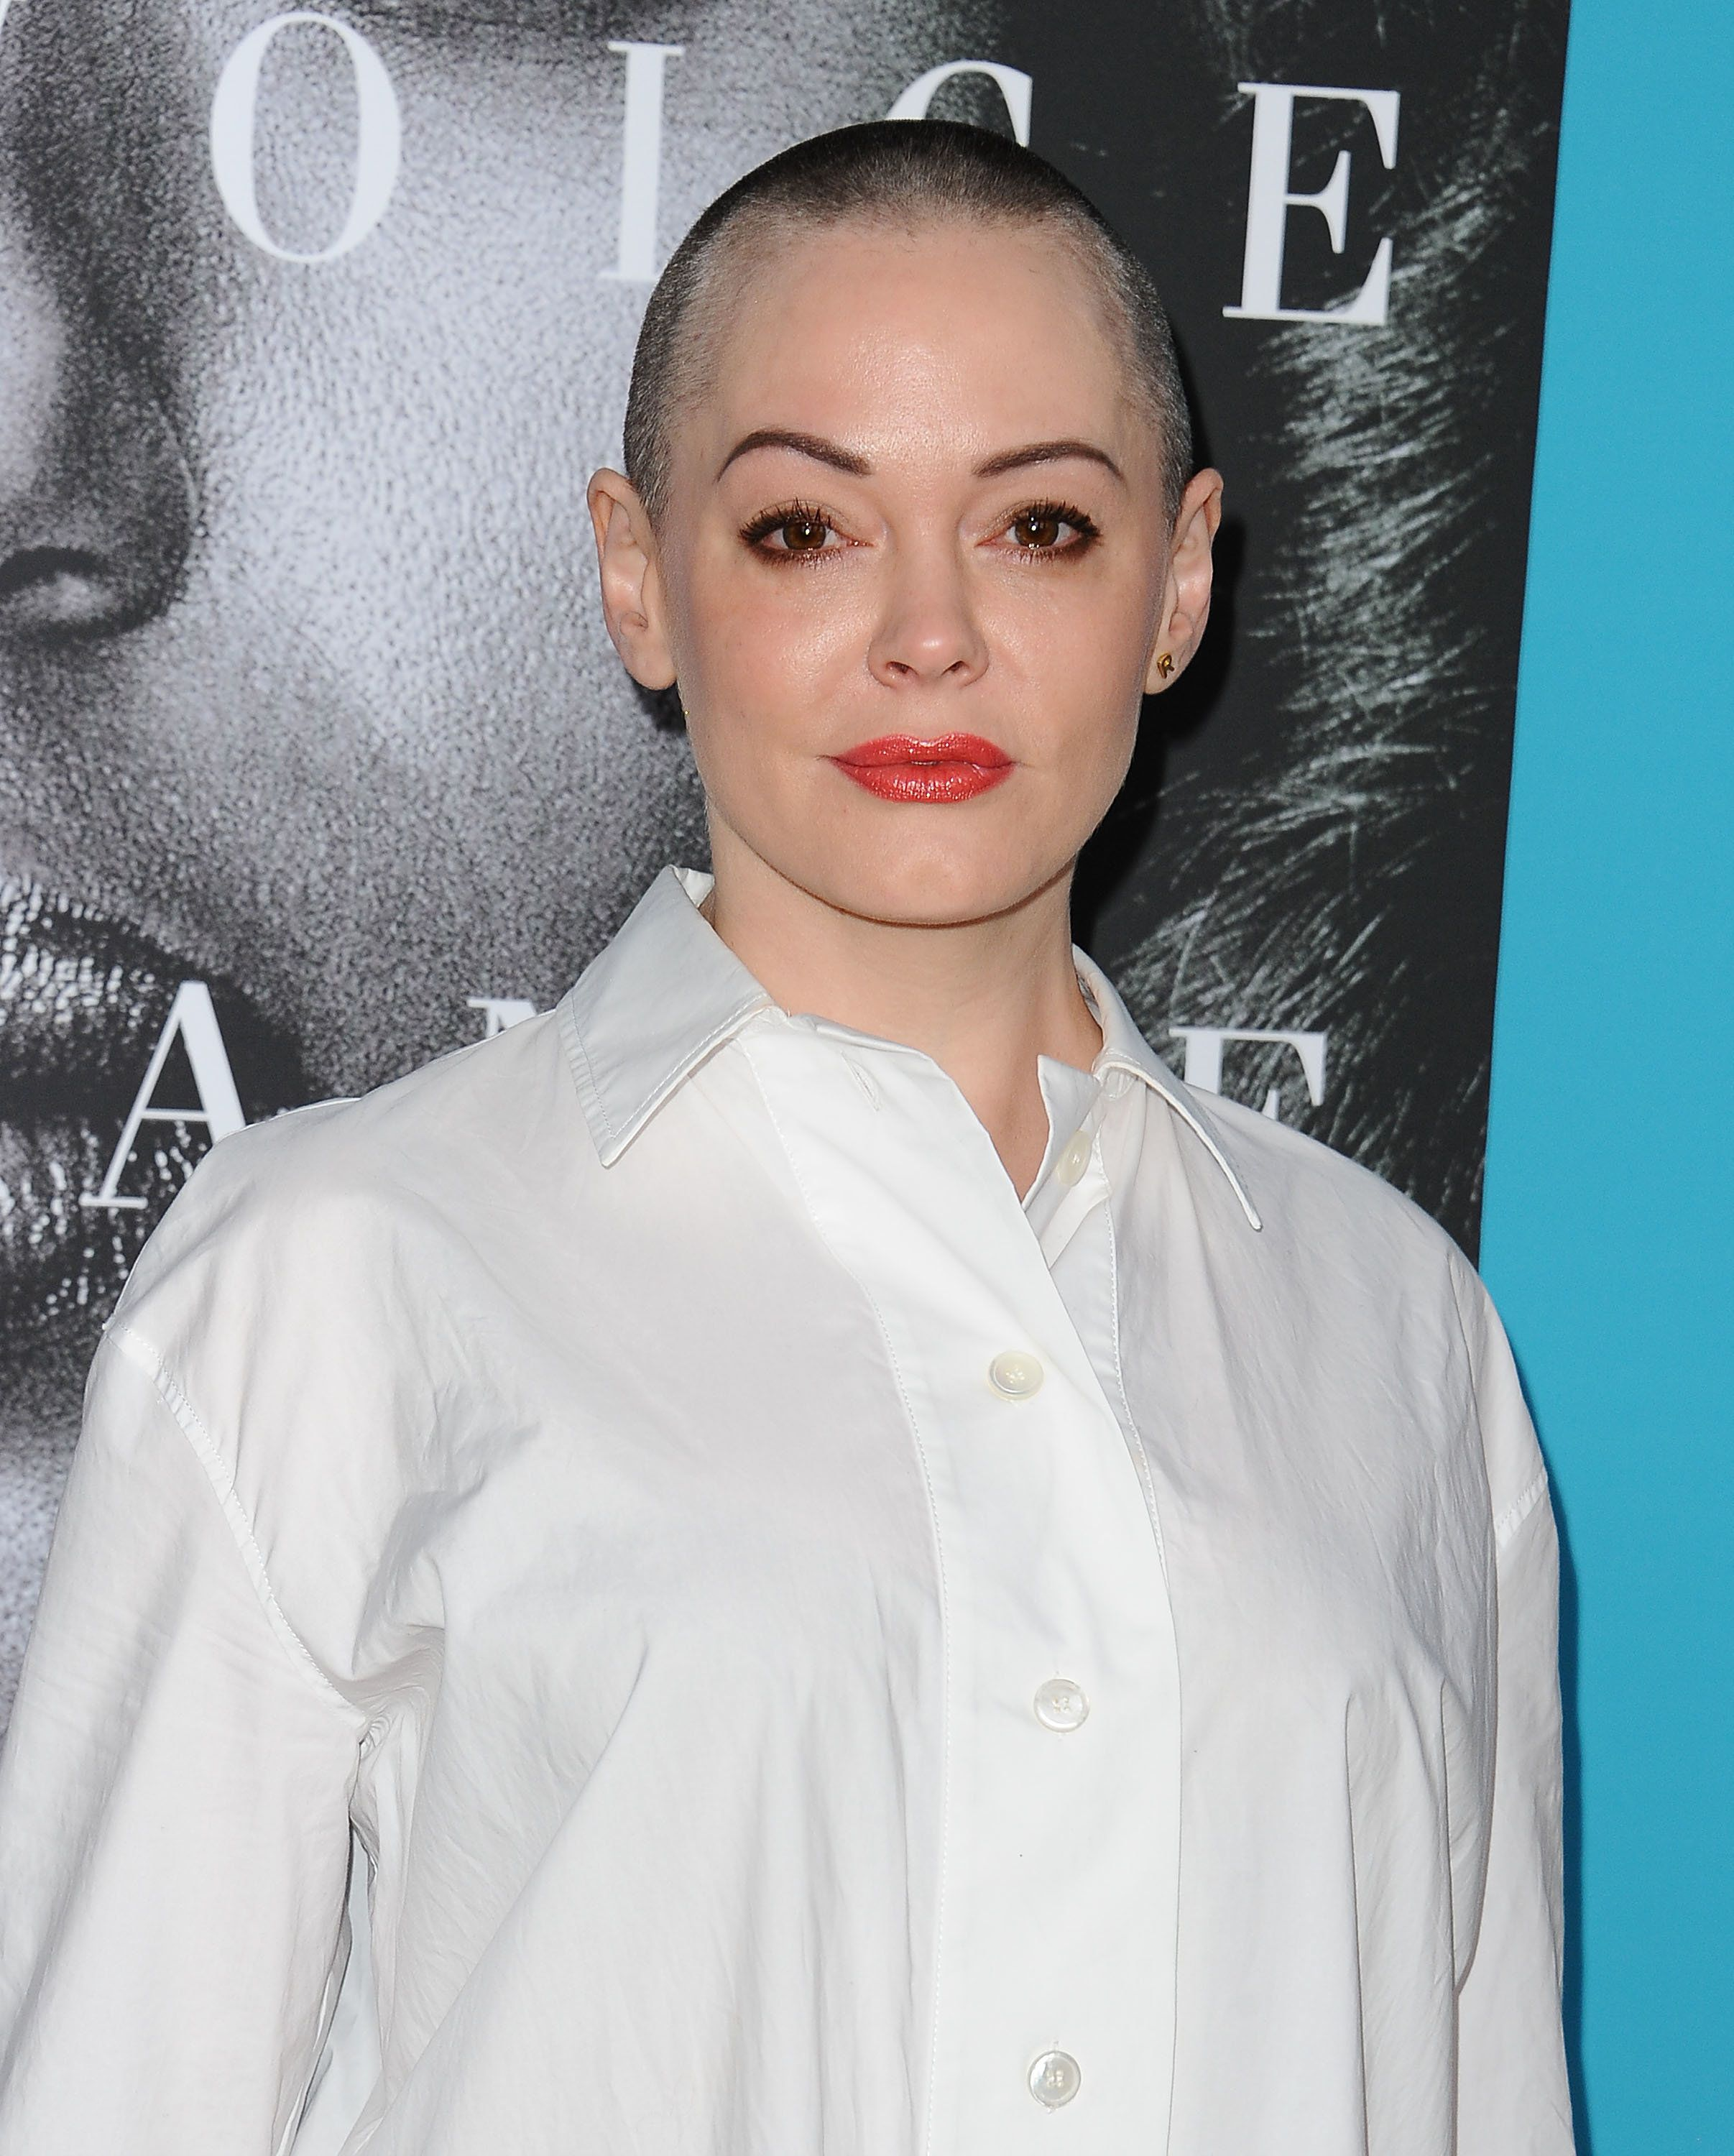 Twitter temporarily suspends Rose McGowan following Harvey Weinstein tweets